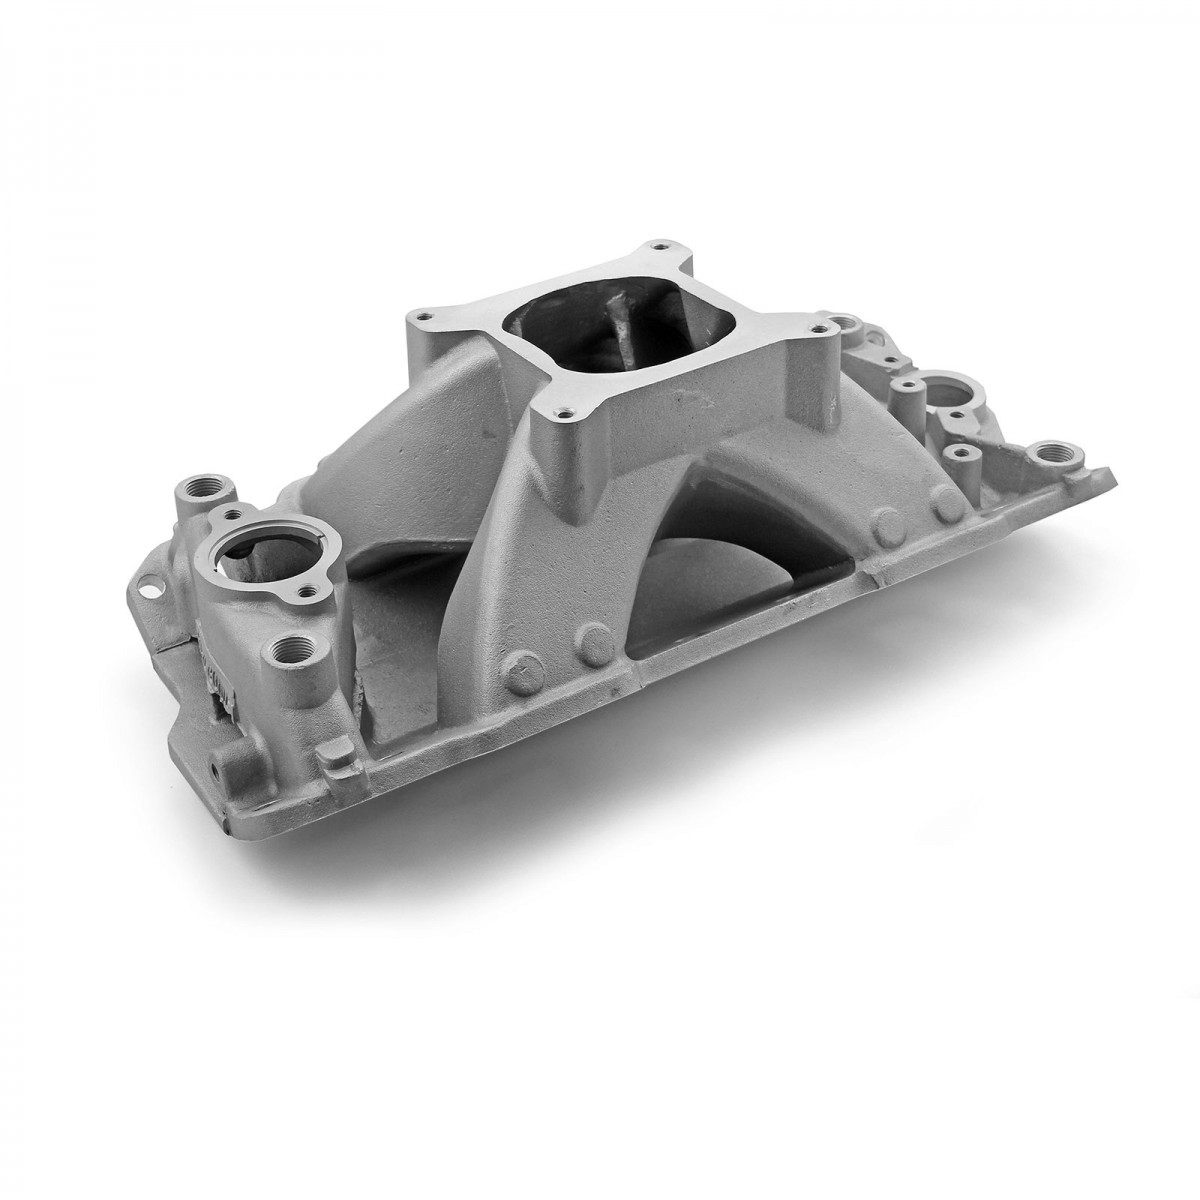 Chevy SBC 350 Shootout 1957-95 High Rise Intake Manifold